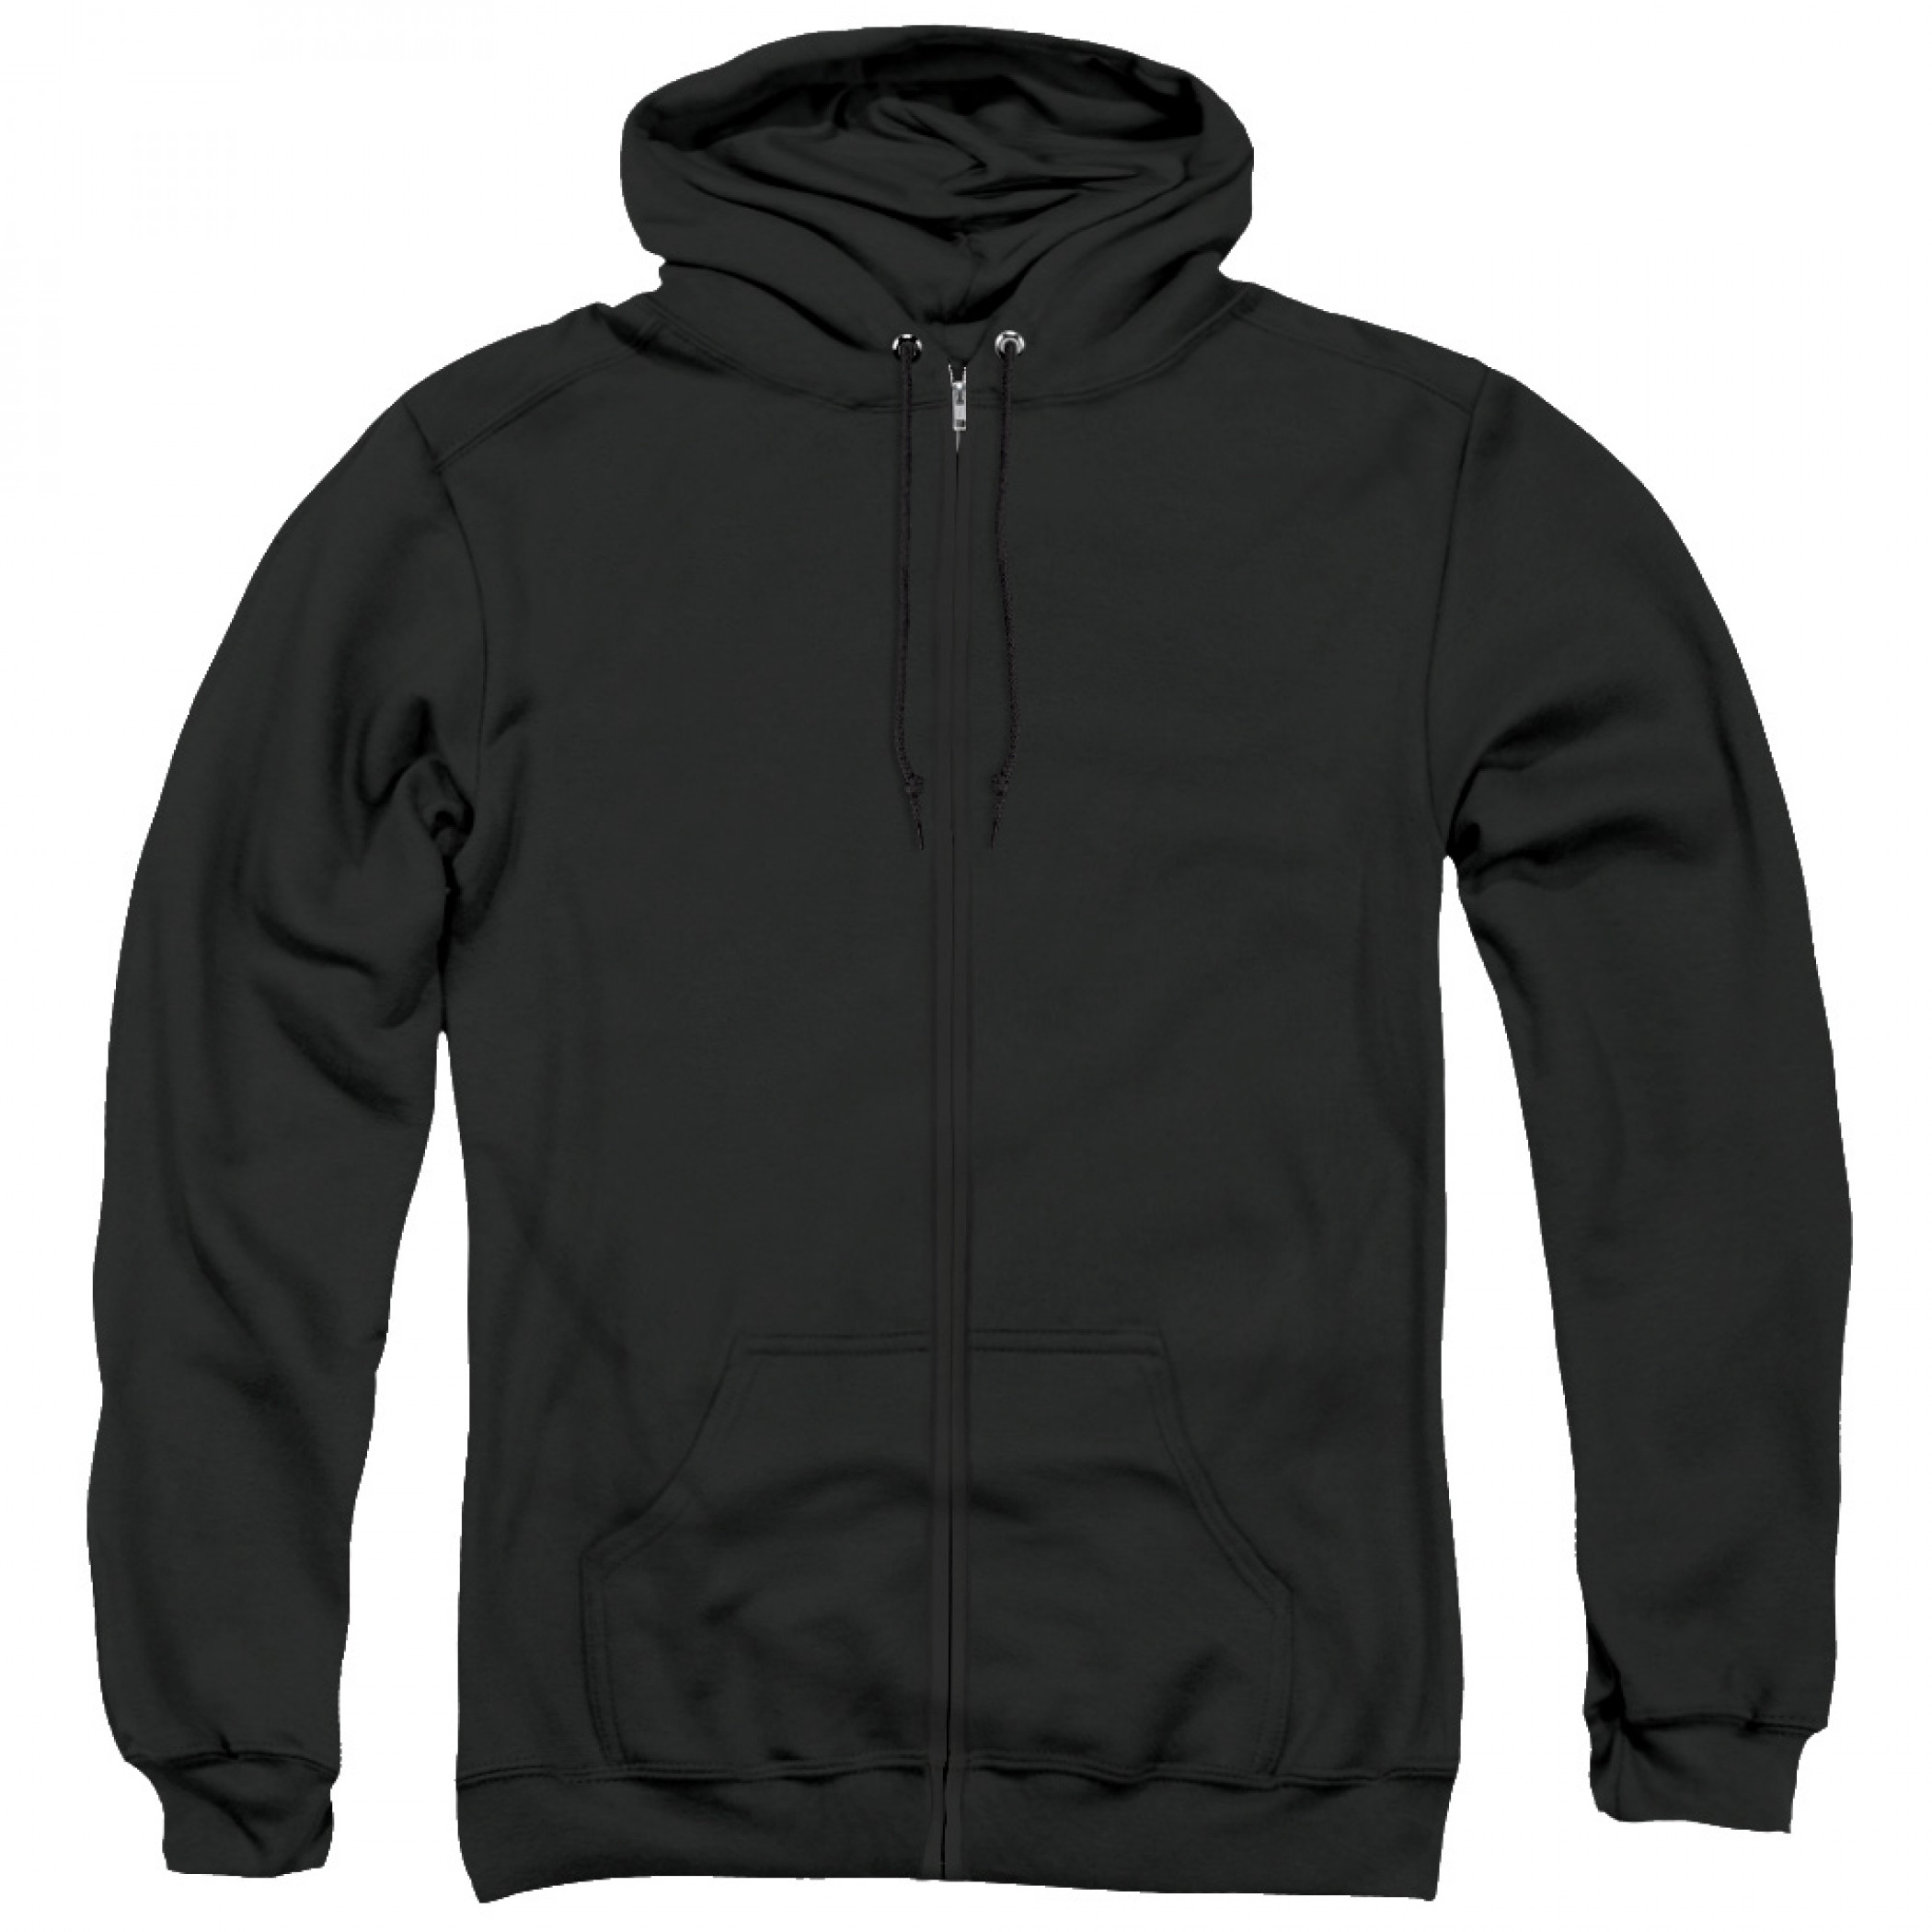 Green Lantern Men's Black Zip-Up Hoodie